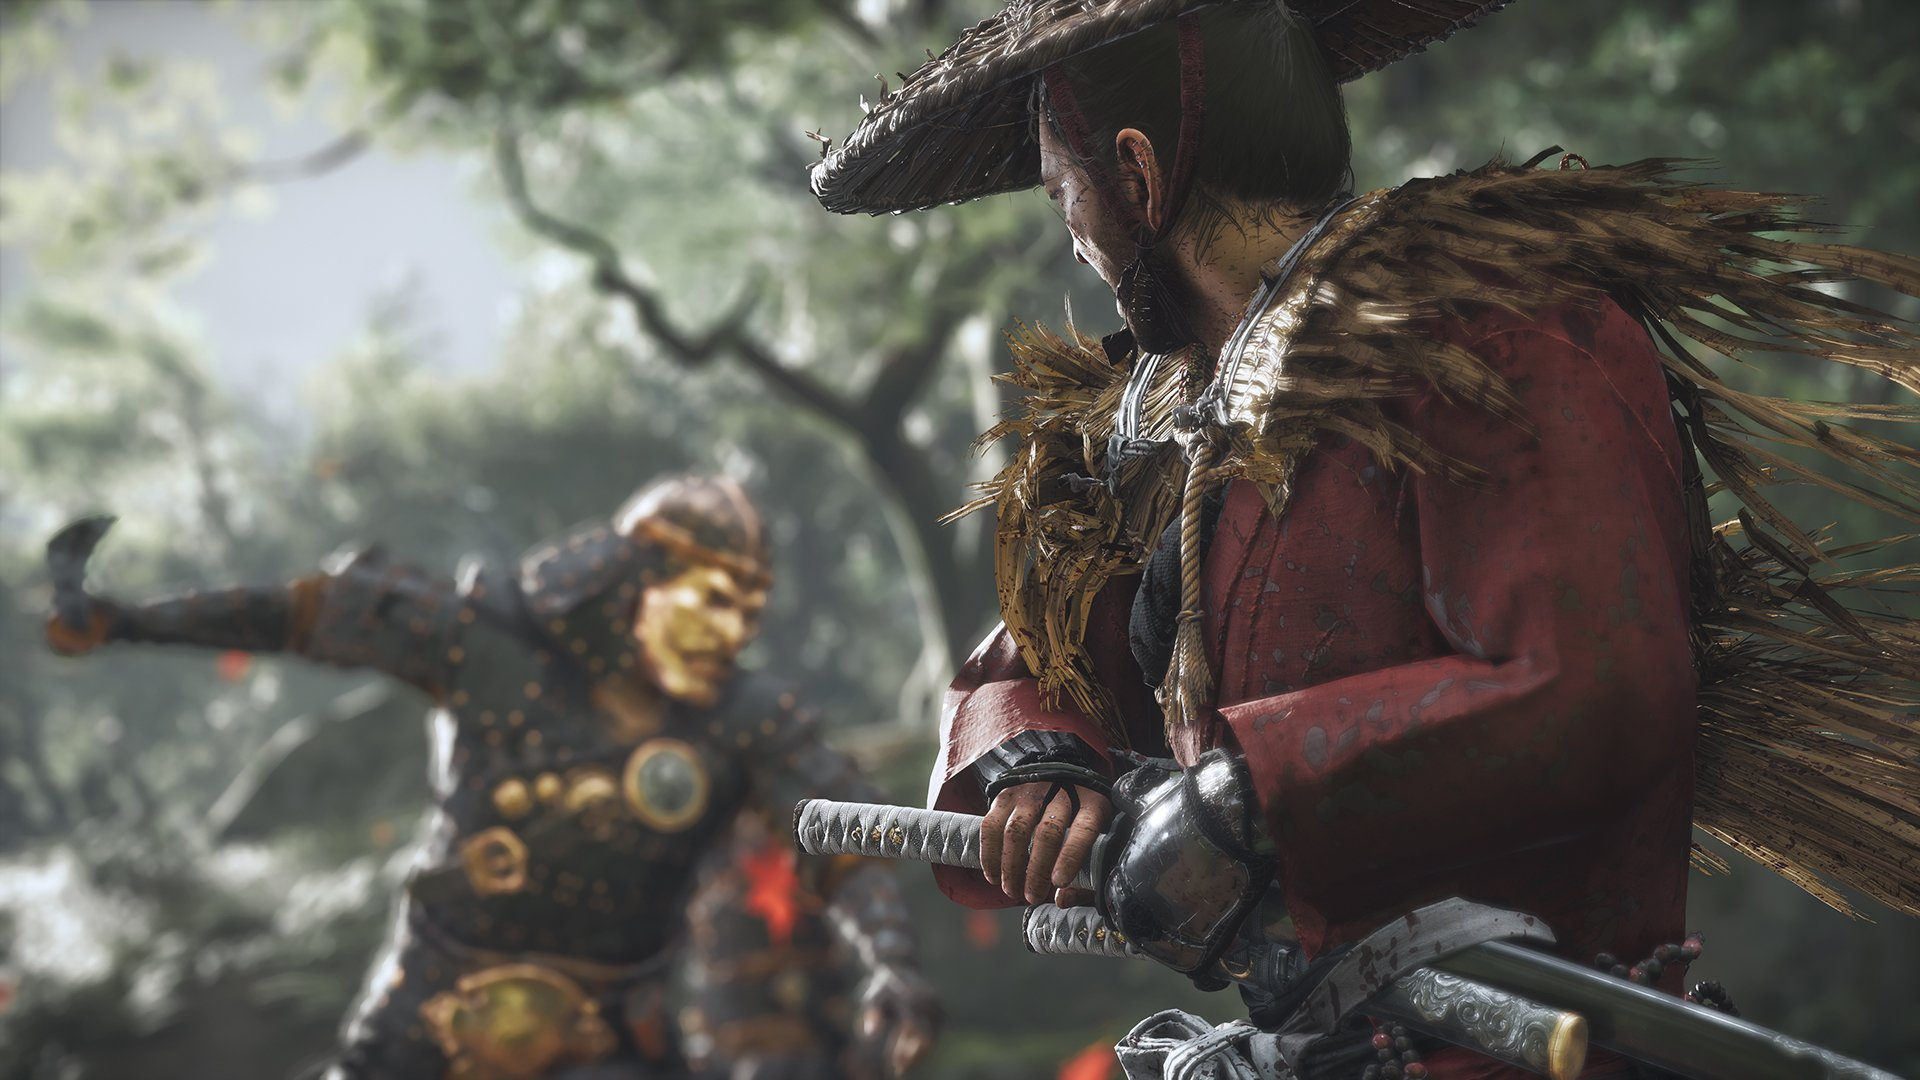 Is there a New Game Plus mode in Ghost of Tsushima?